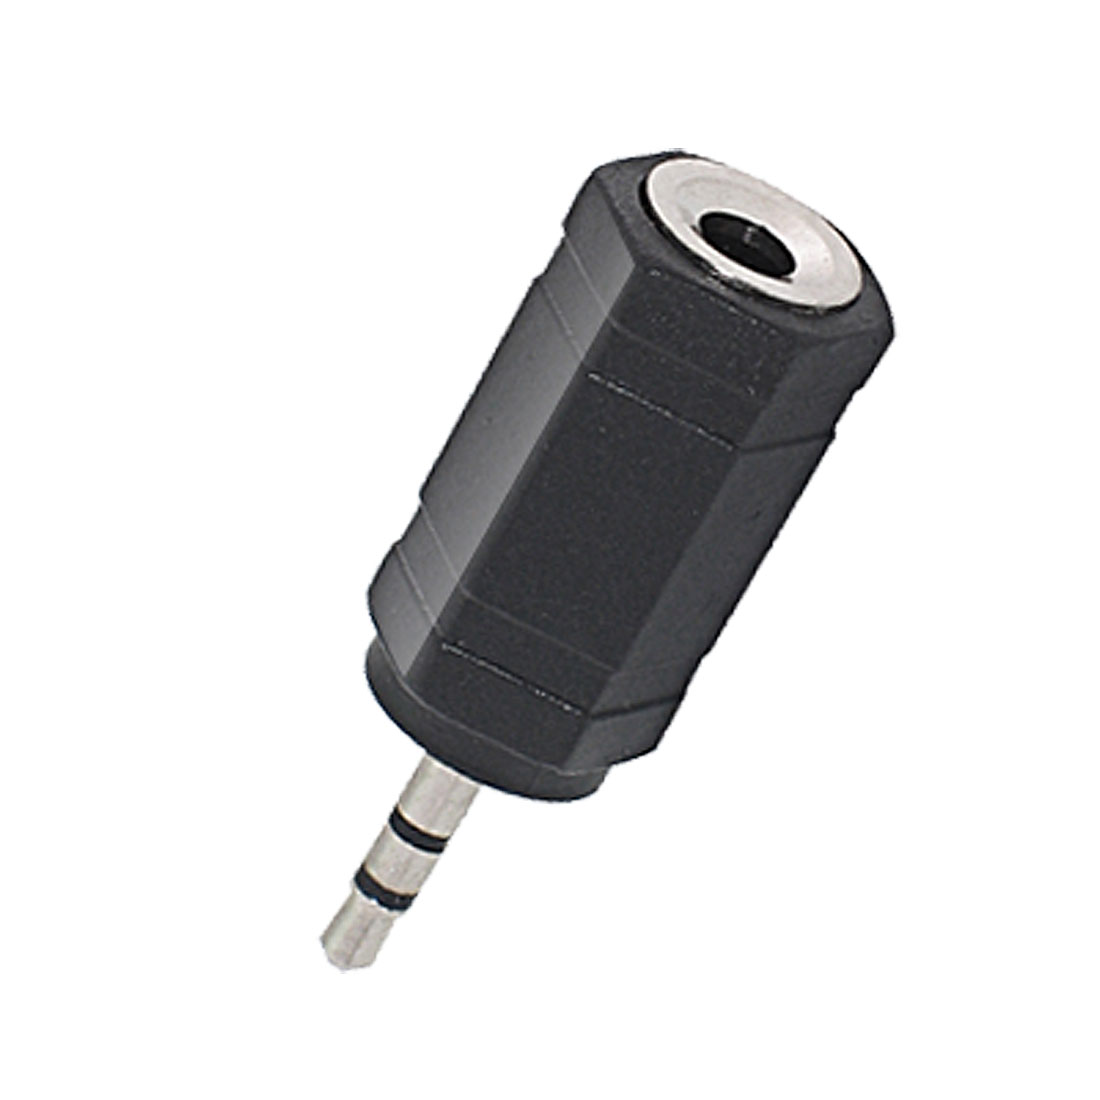 Audio Conversion Adapter Plug for 2.5mm STEREO PLUG TO 3.5mm STEREO JACK